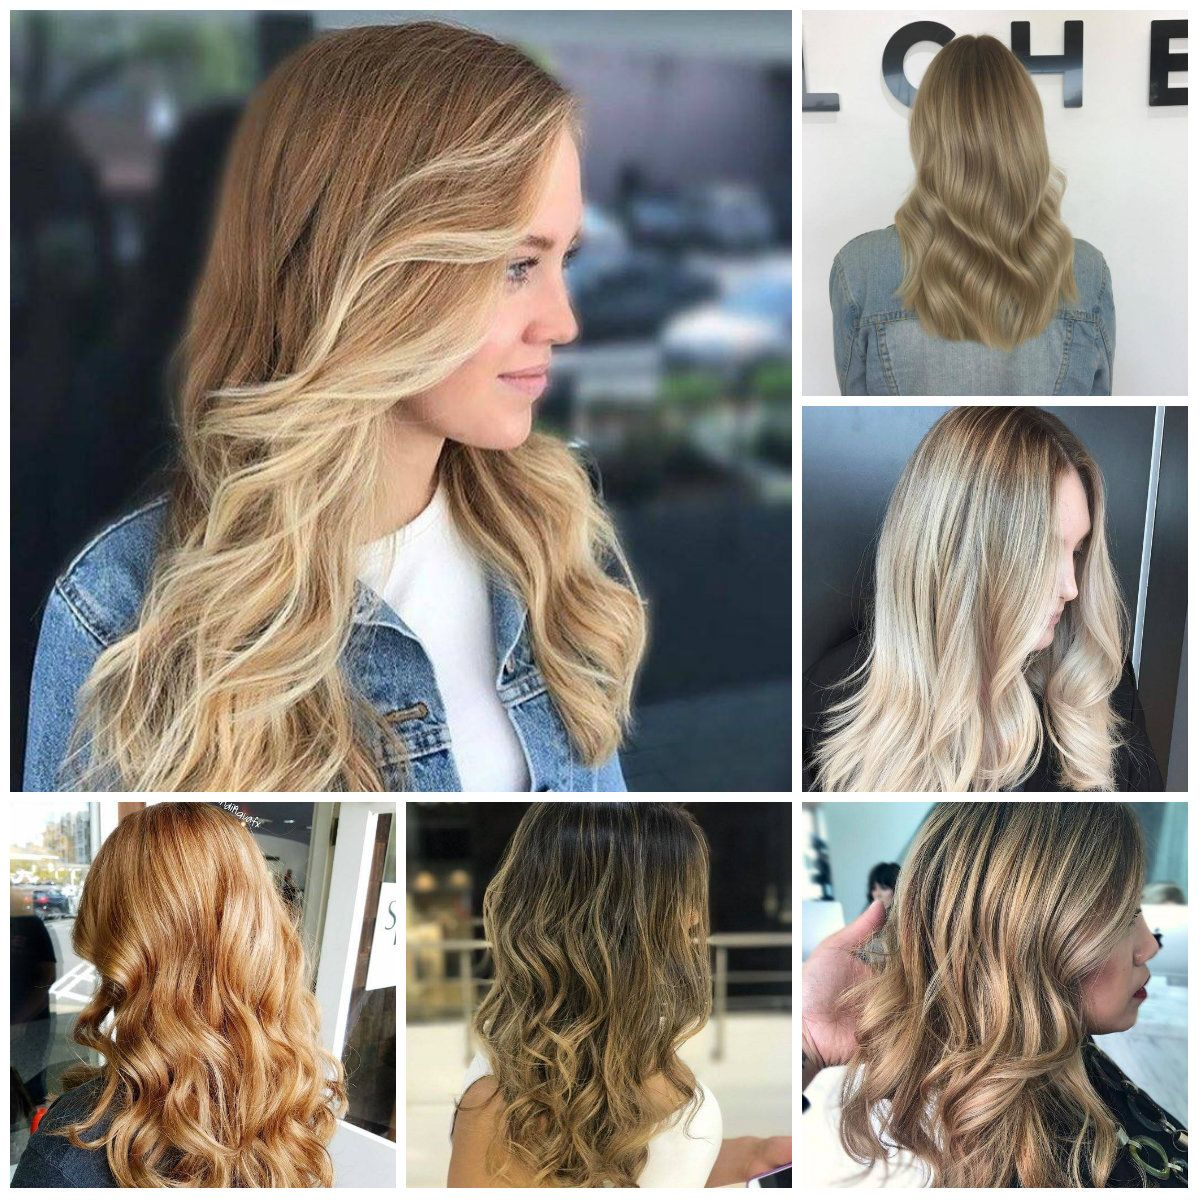 Shades Of Blonde Hair Color To Rock In 2018 Haircolor Pinterest